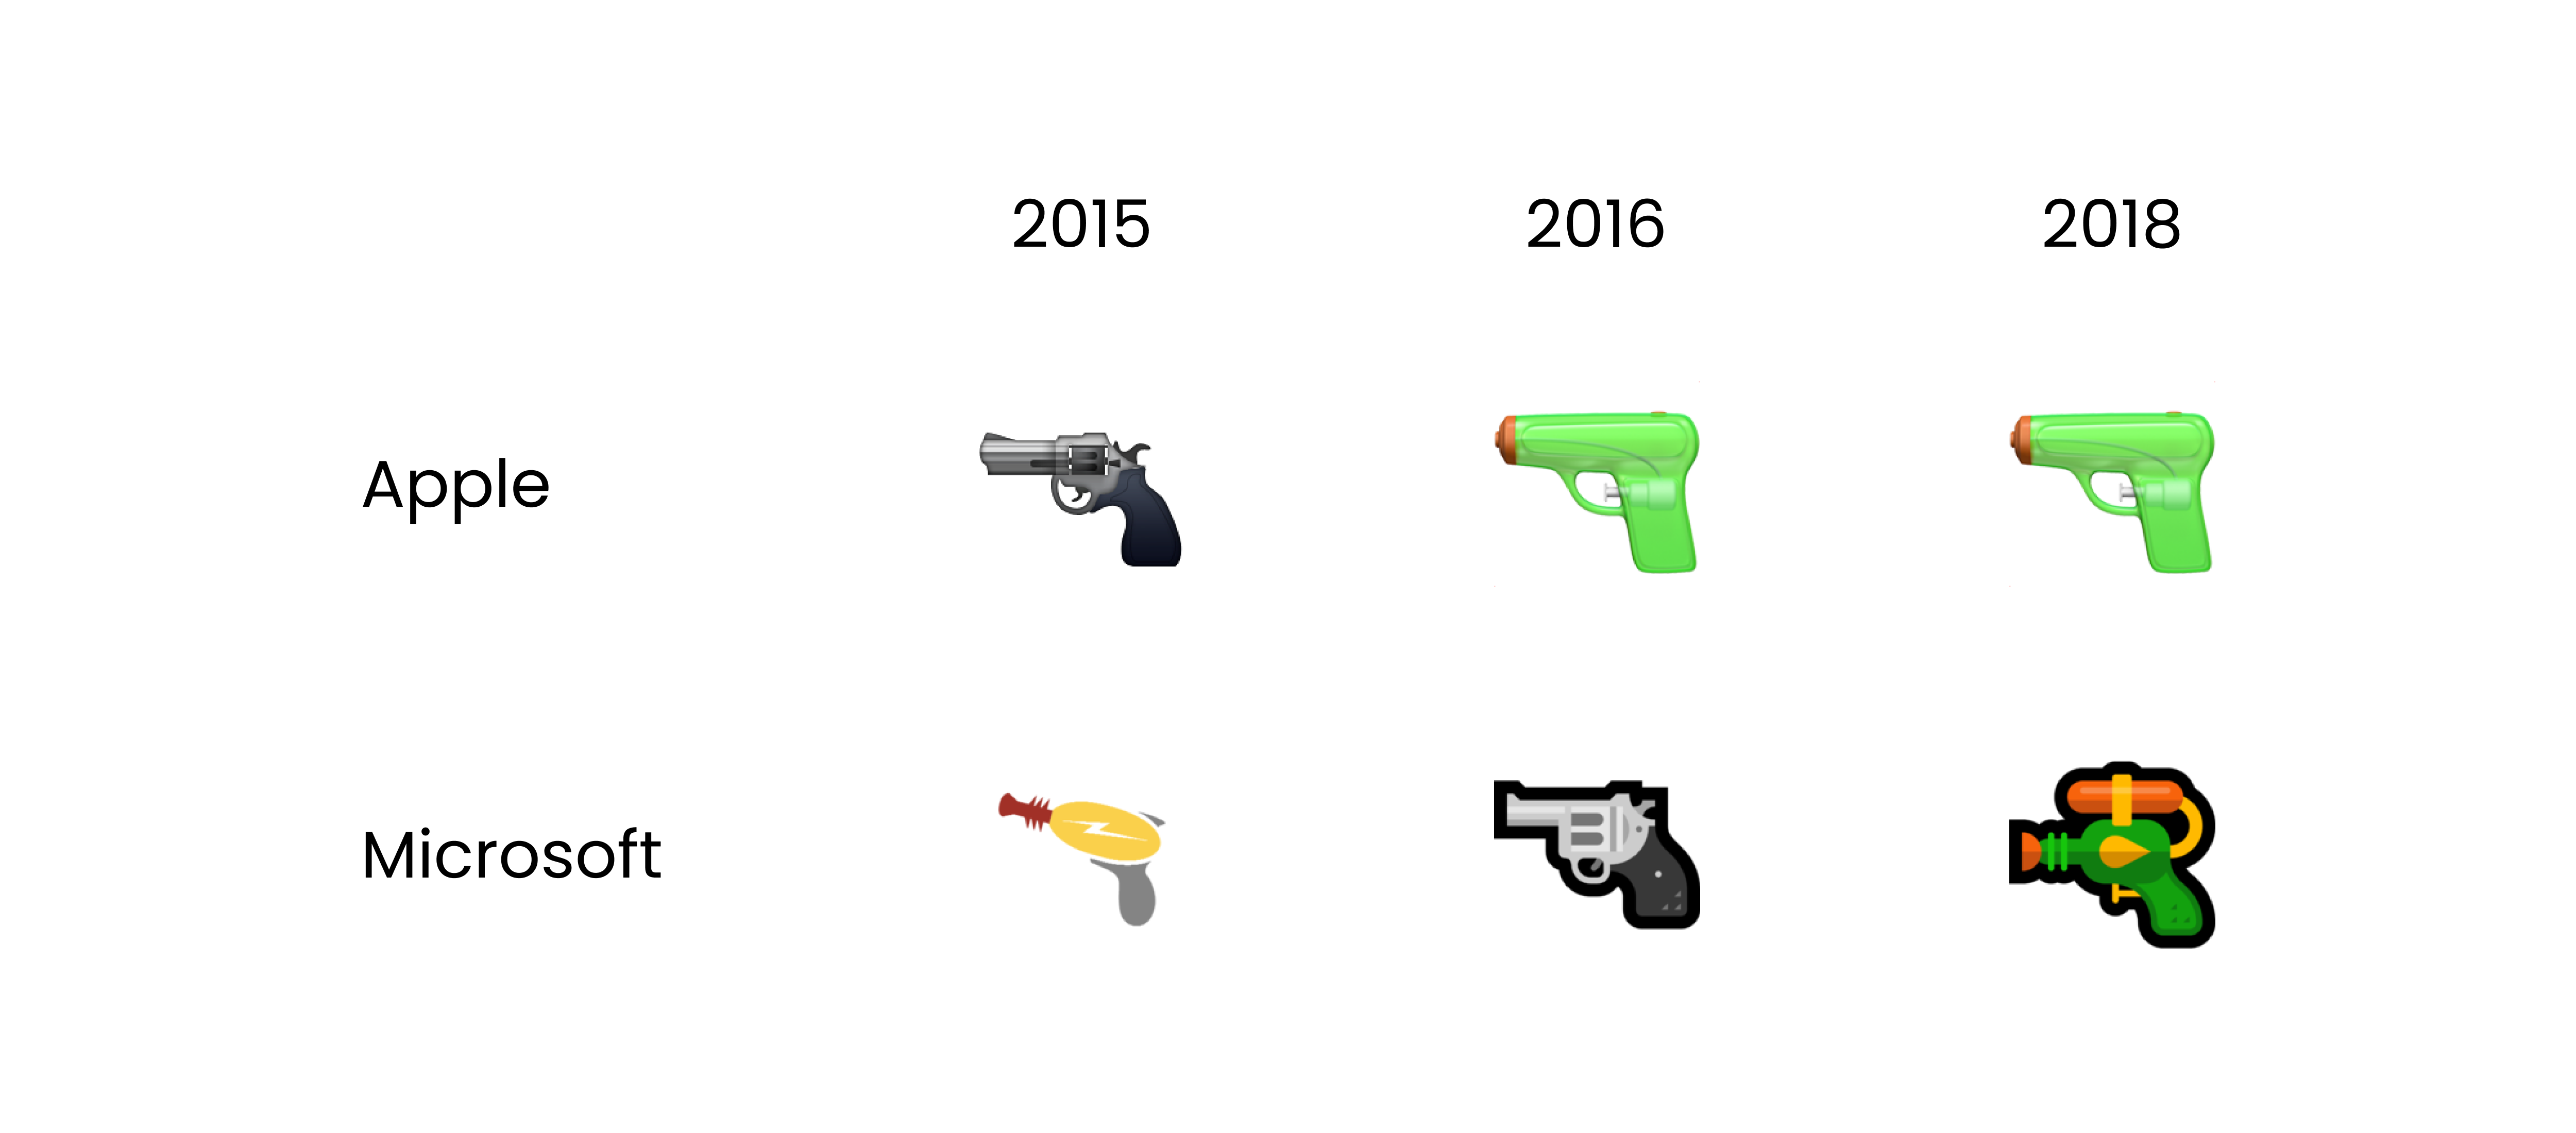 A chart showing the gun emoji design from Apple and Microsoft in 2015, 2016, and 2018